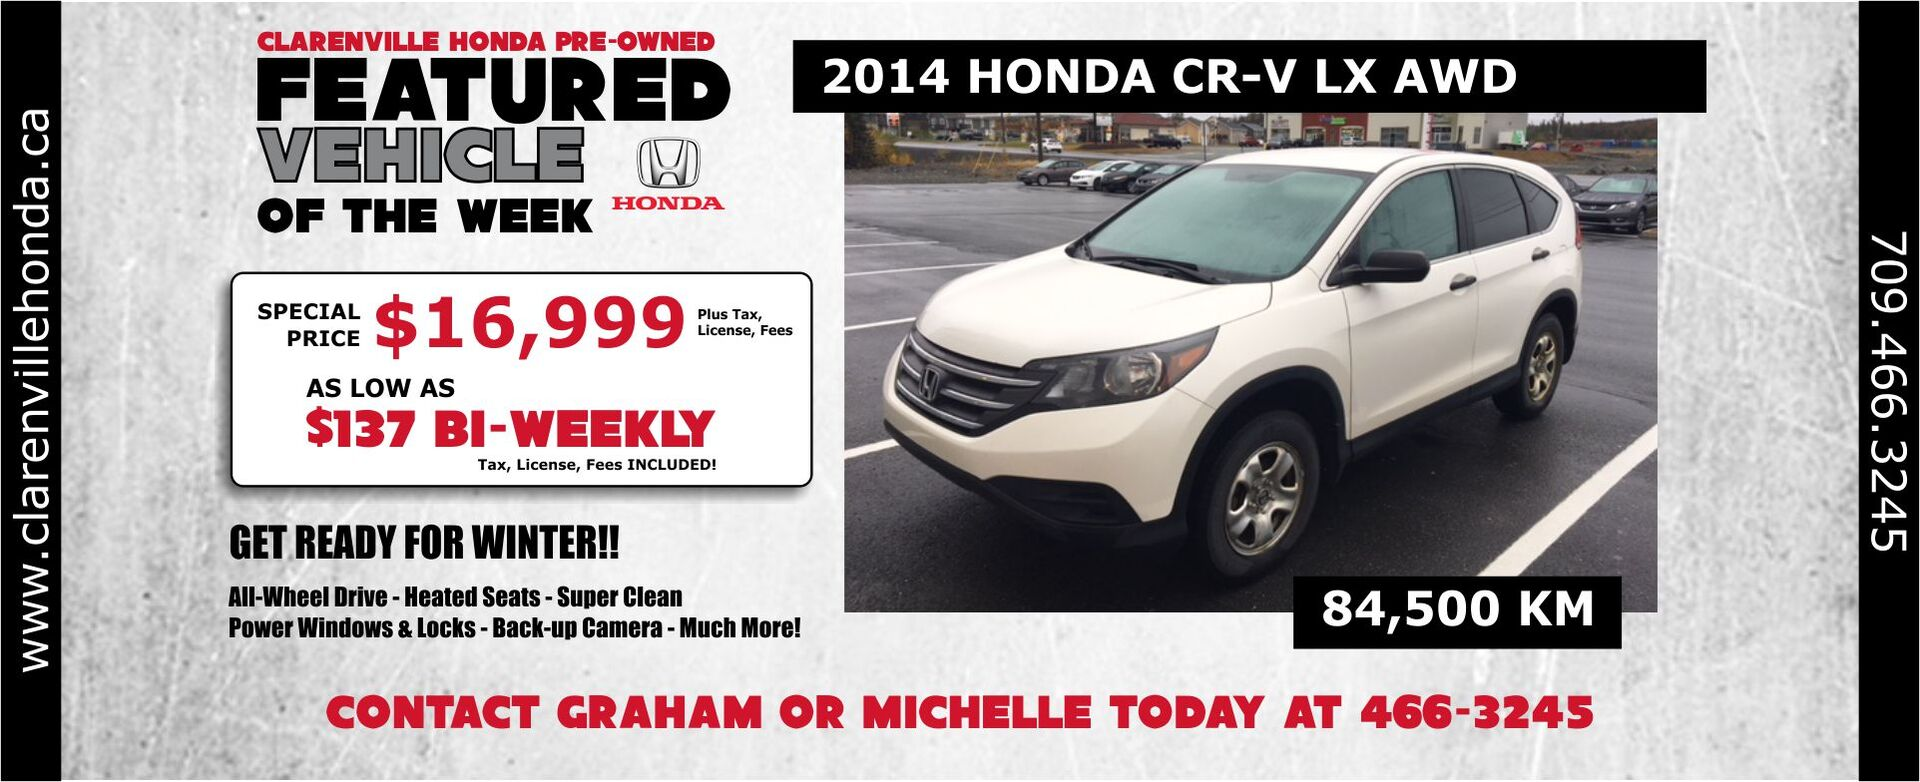 Used Feature - 2014 CR-V LX AWD